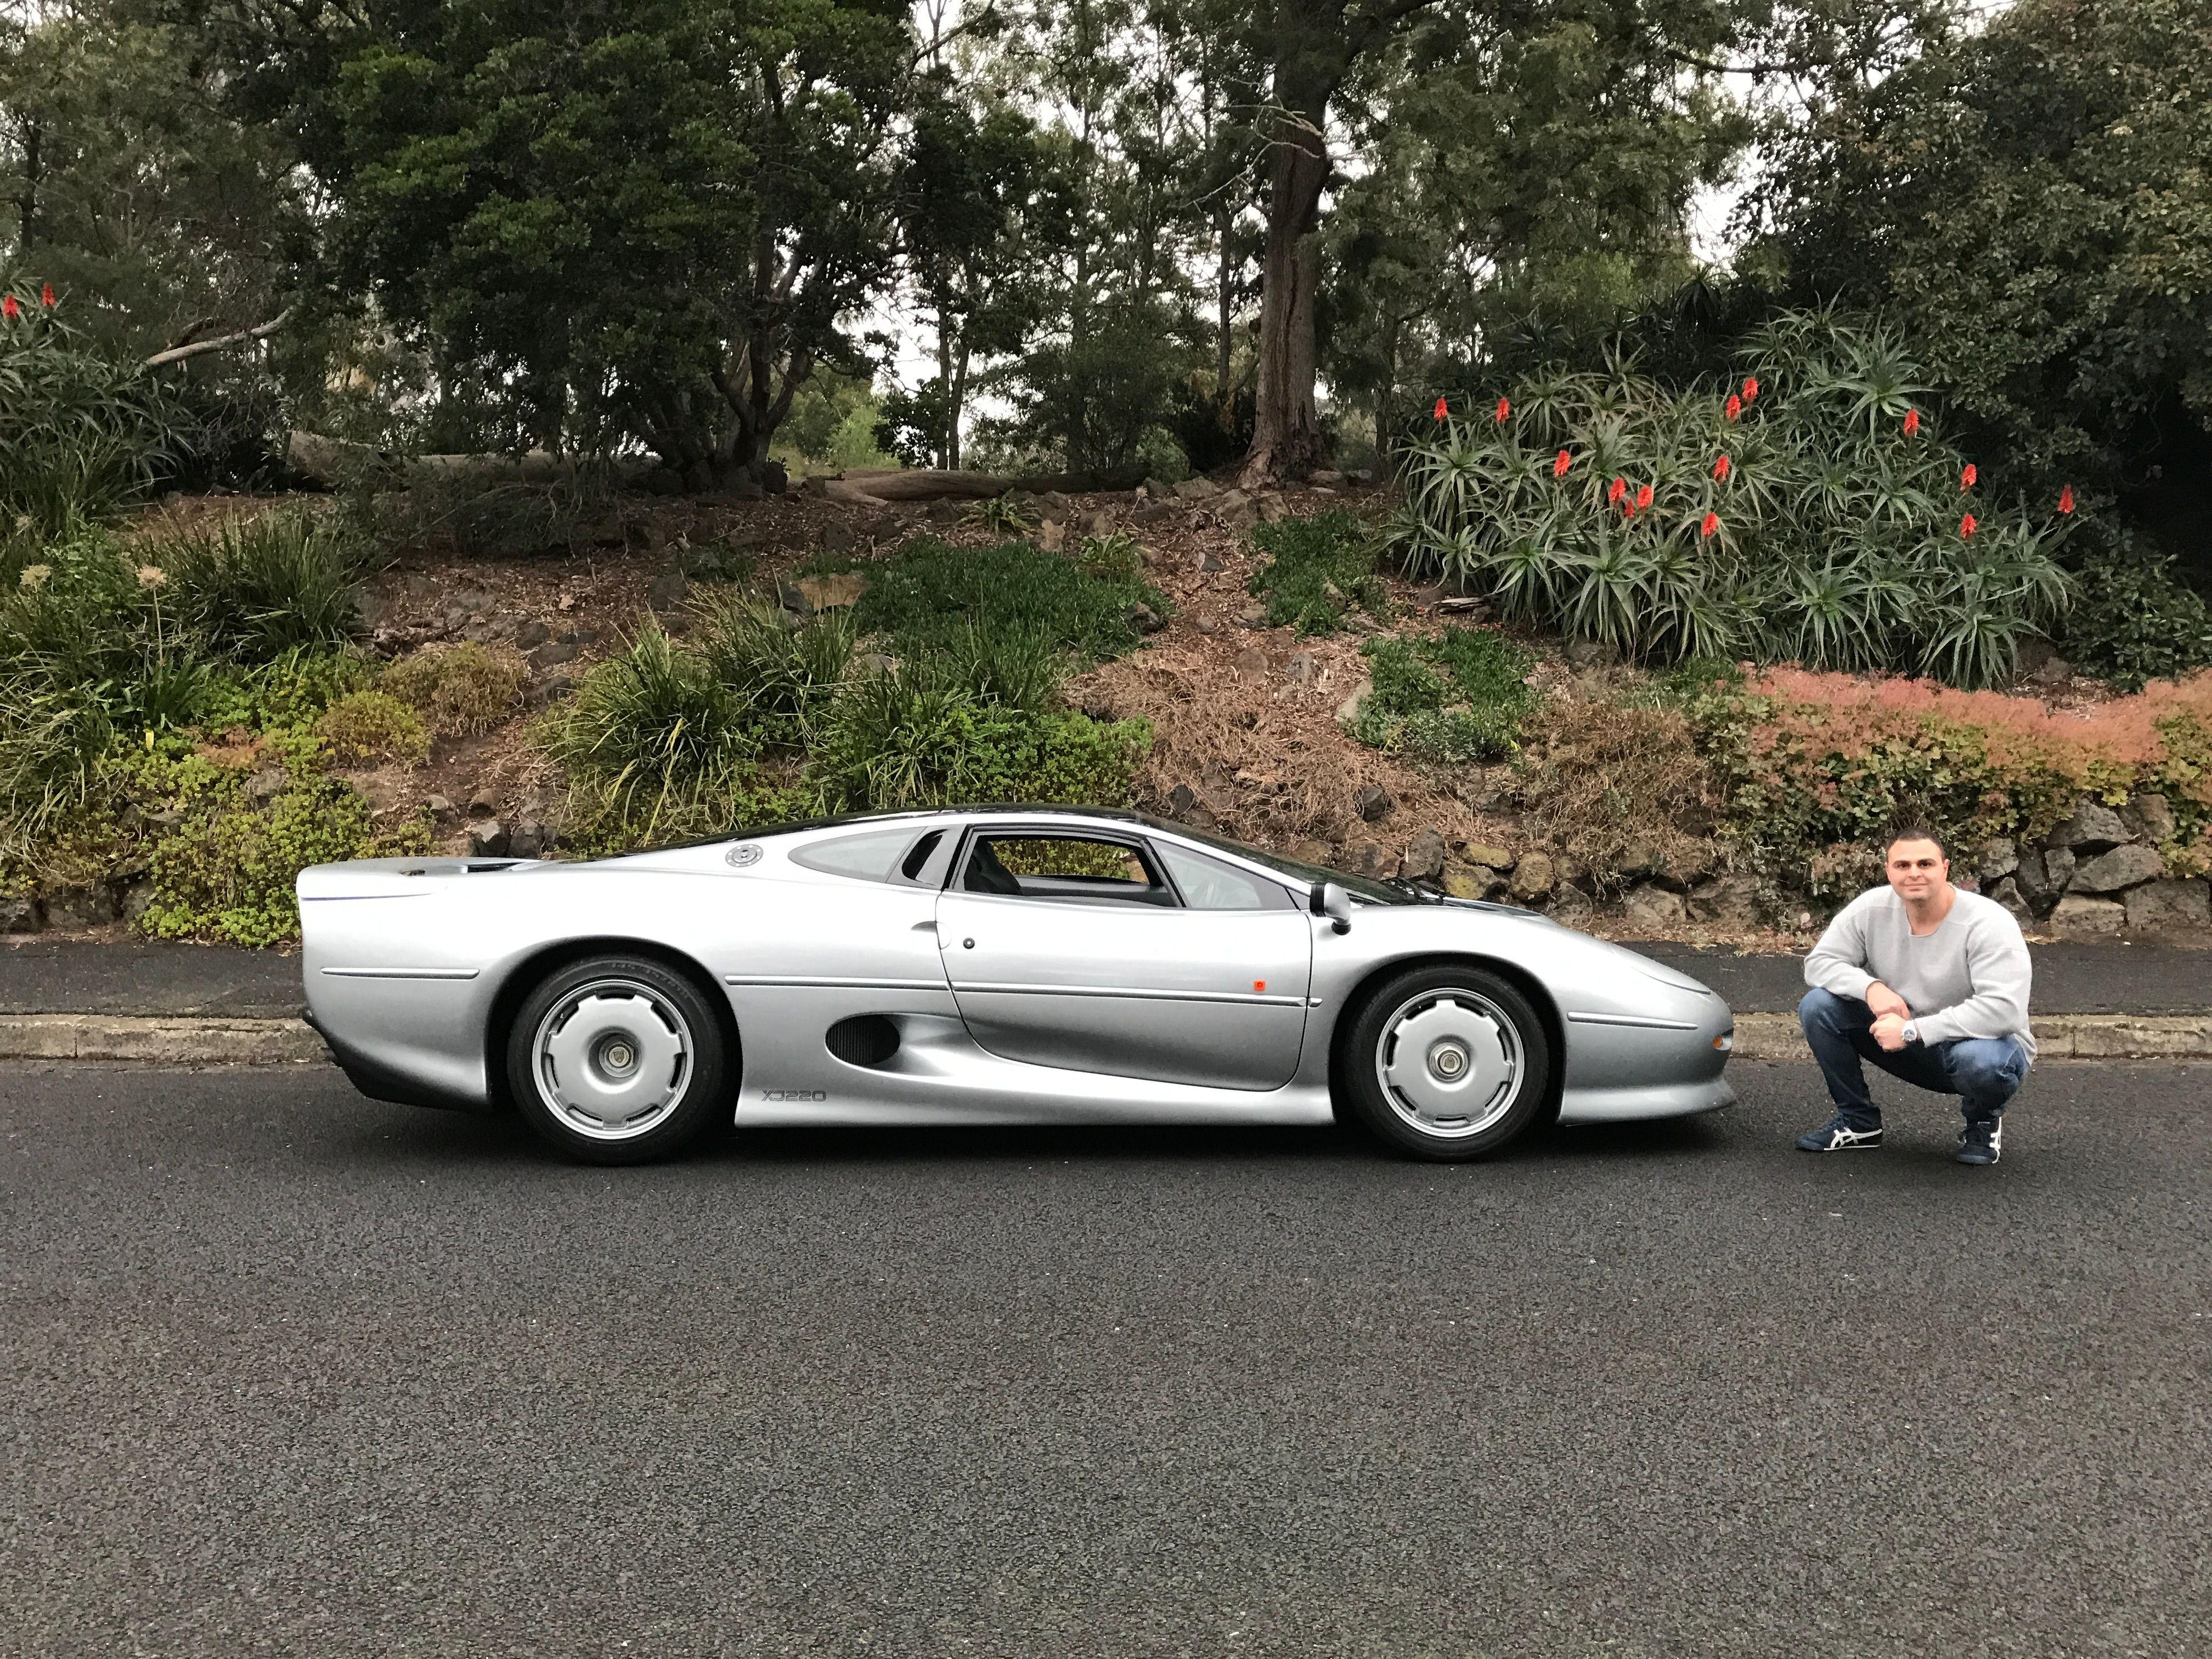 Charming Why Supercar When You Can HYPERCAR In The Iconic Jaguar XJ220! | HuffPost